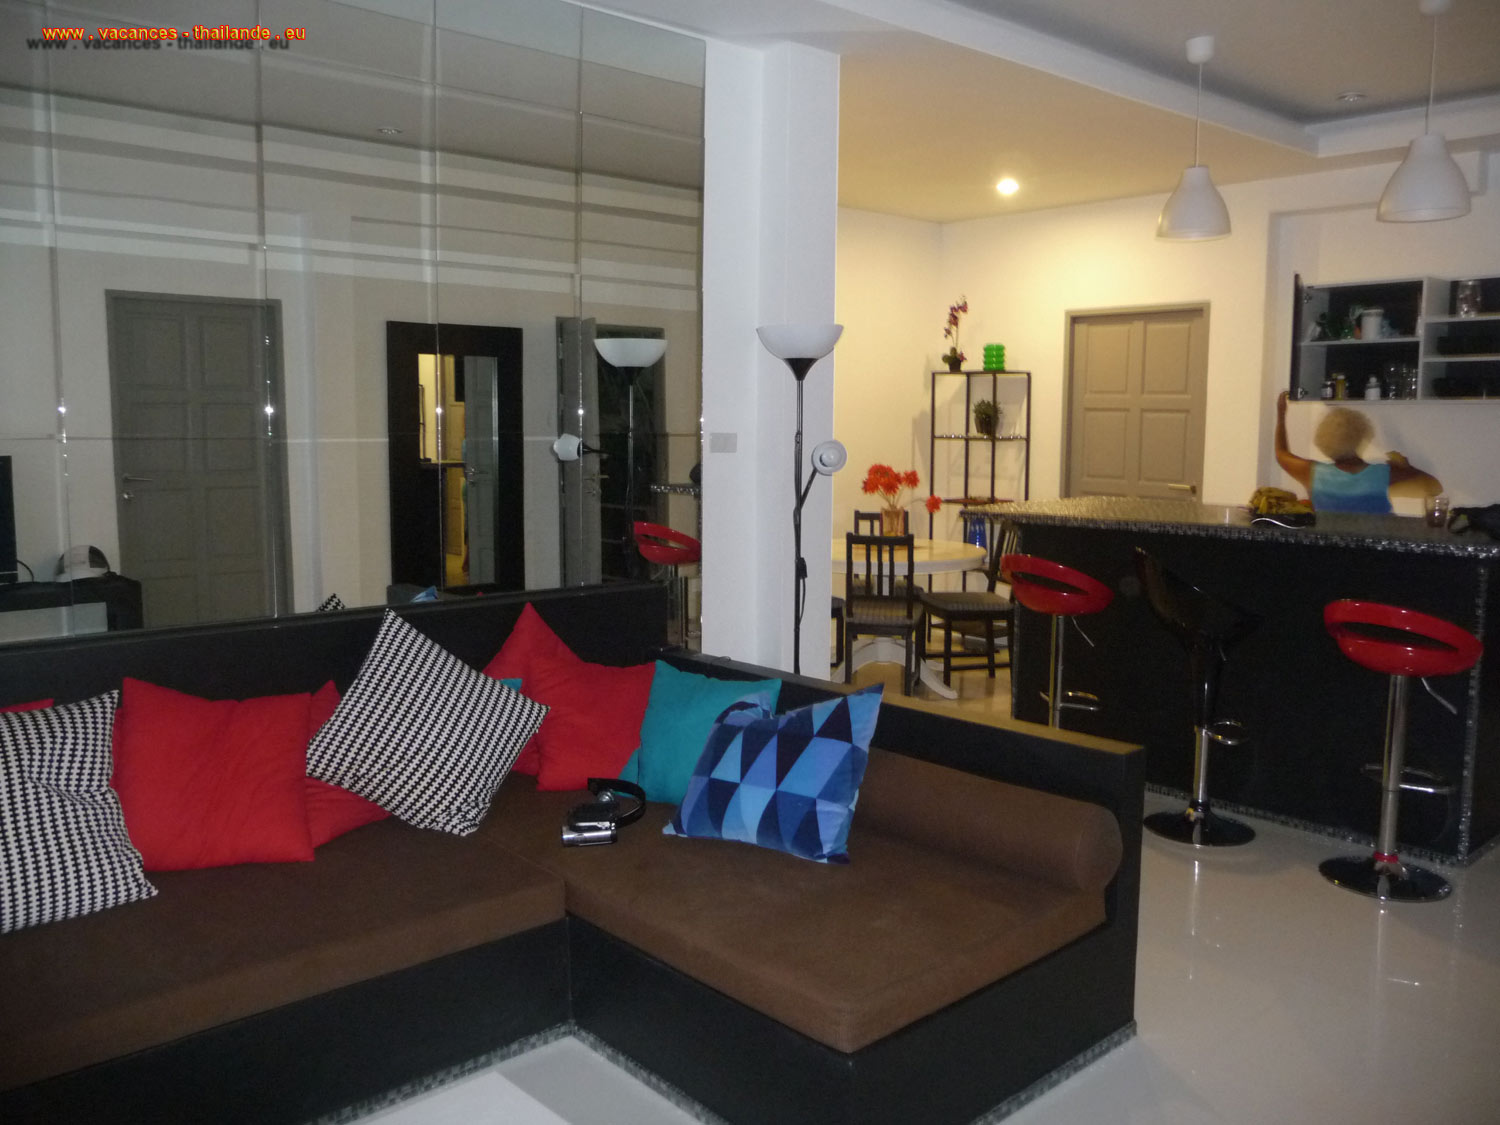 p33 location in July, June, August, May, September, April 3 bedroom home in the kitchen of the villa lounge bar in Koh Samui thailand